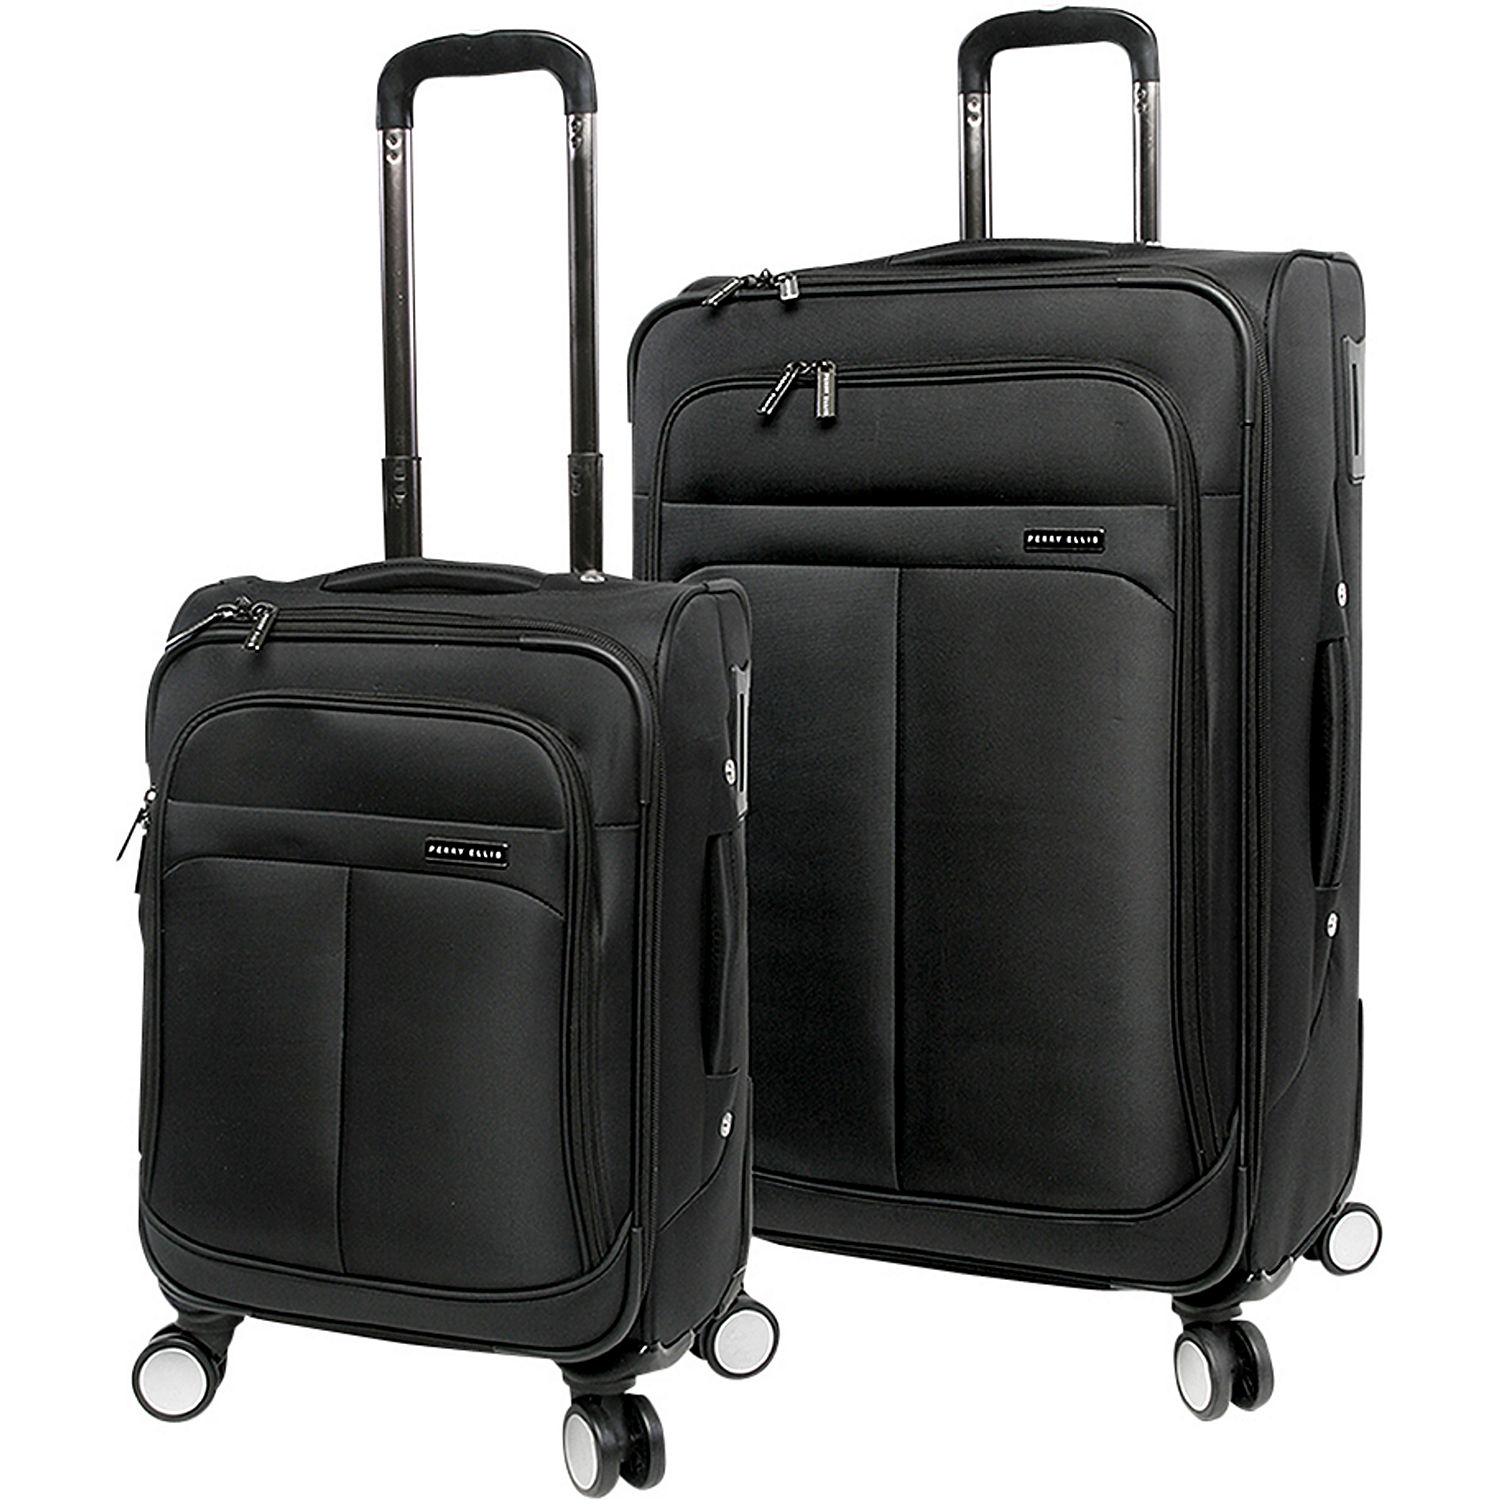 Perry Ellis Prodigy Lightweight Spinner Luggage Set